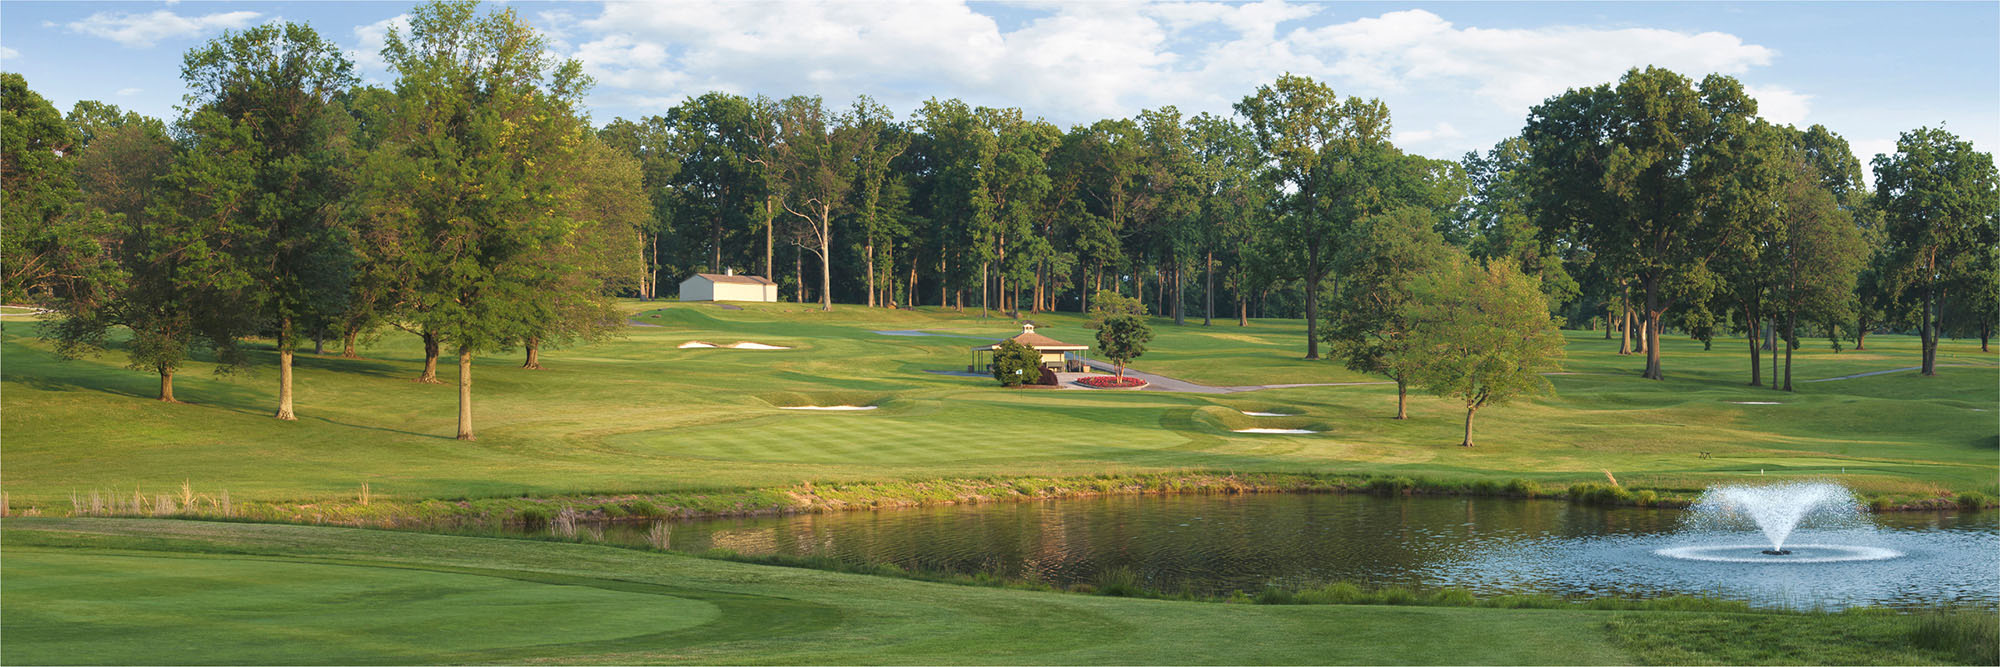 Golf Course Image - Hillendale Country Club No. 5